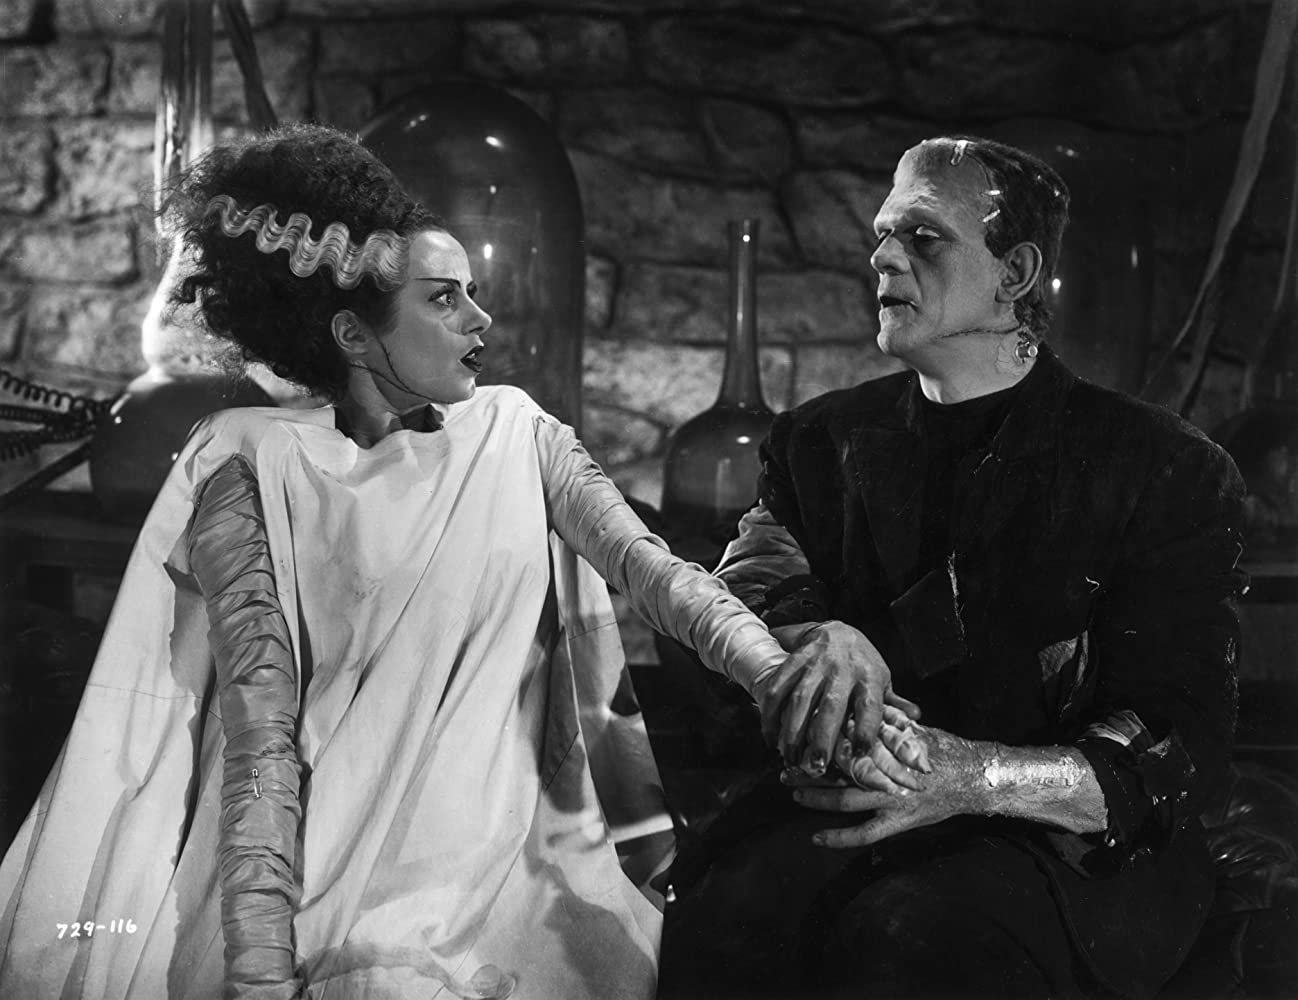 Boris Karloff and Elsa Lanchester in Bride of Frankenstein 1935